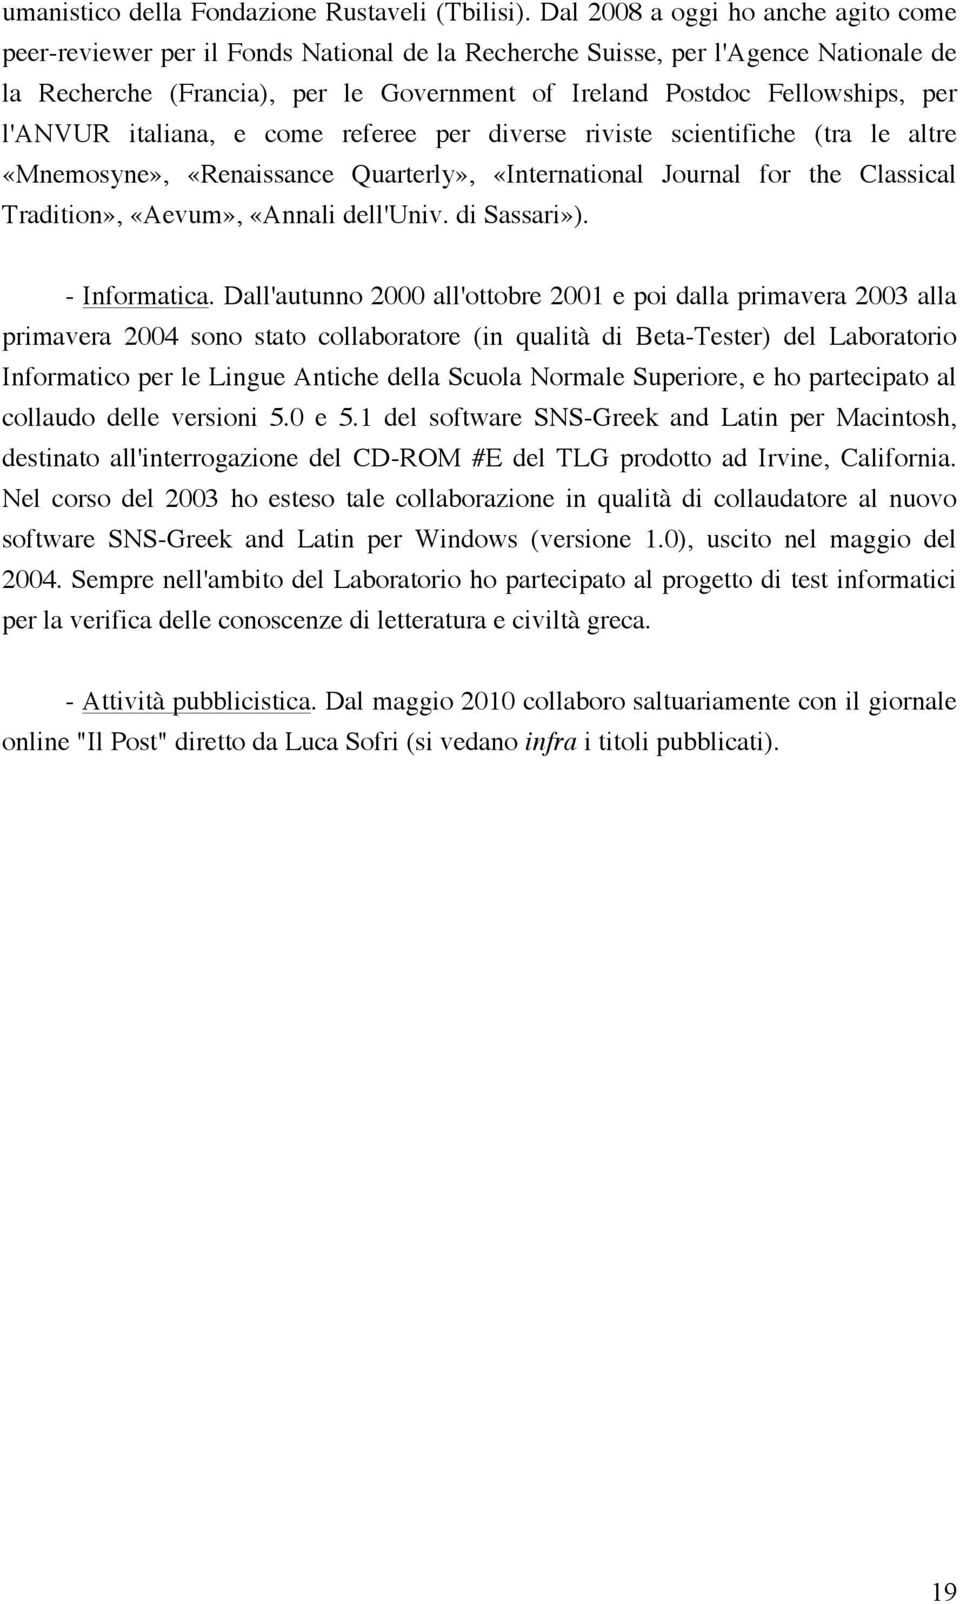 l'anvur italiana, e come referee per diverse riviste scientifiche (tra le altre «Mnemosyne», «Renaissance Quarterly», «International Journal for the Classical Tradition», «Aevum», «Annali dell'univ.